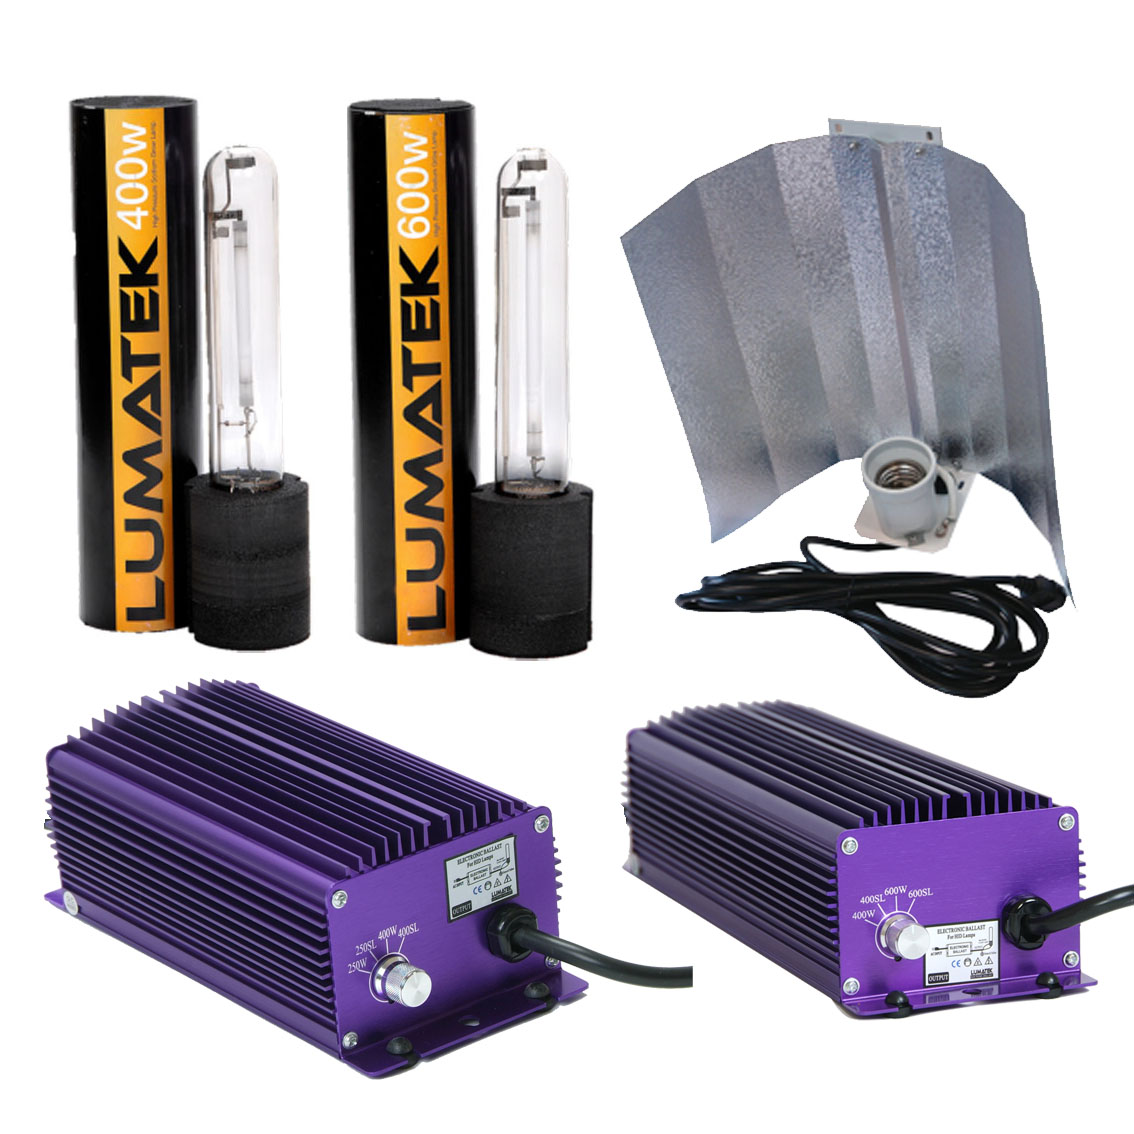 Image is loading Lumatek-Hydroponics-Grow-Light-Kits-400w-600w-Dimmable-  sc 1 st  eBay & Lumatek Hydroponics Grow Light Kits 400w 600w Dimmable Ballast HPS ... azcodes.com